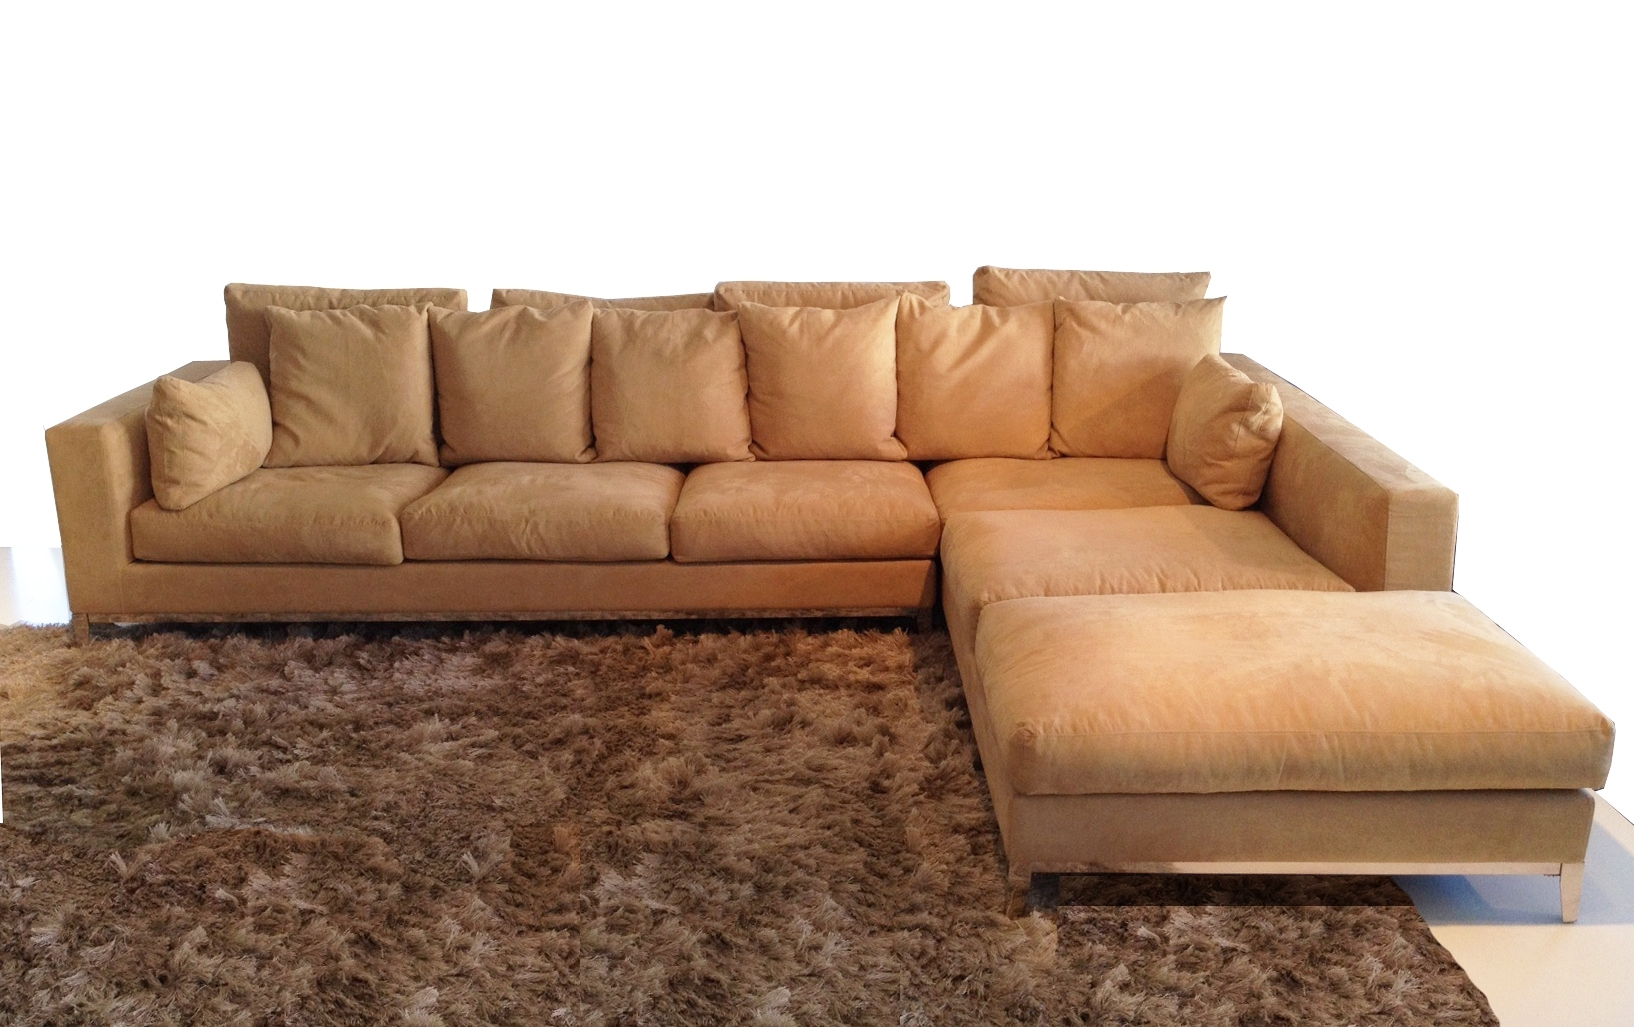 Modern Furniture Inside Removable Covers Sectional Sofas (View 8 of 20)